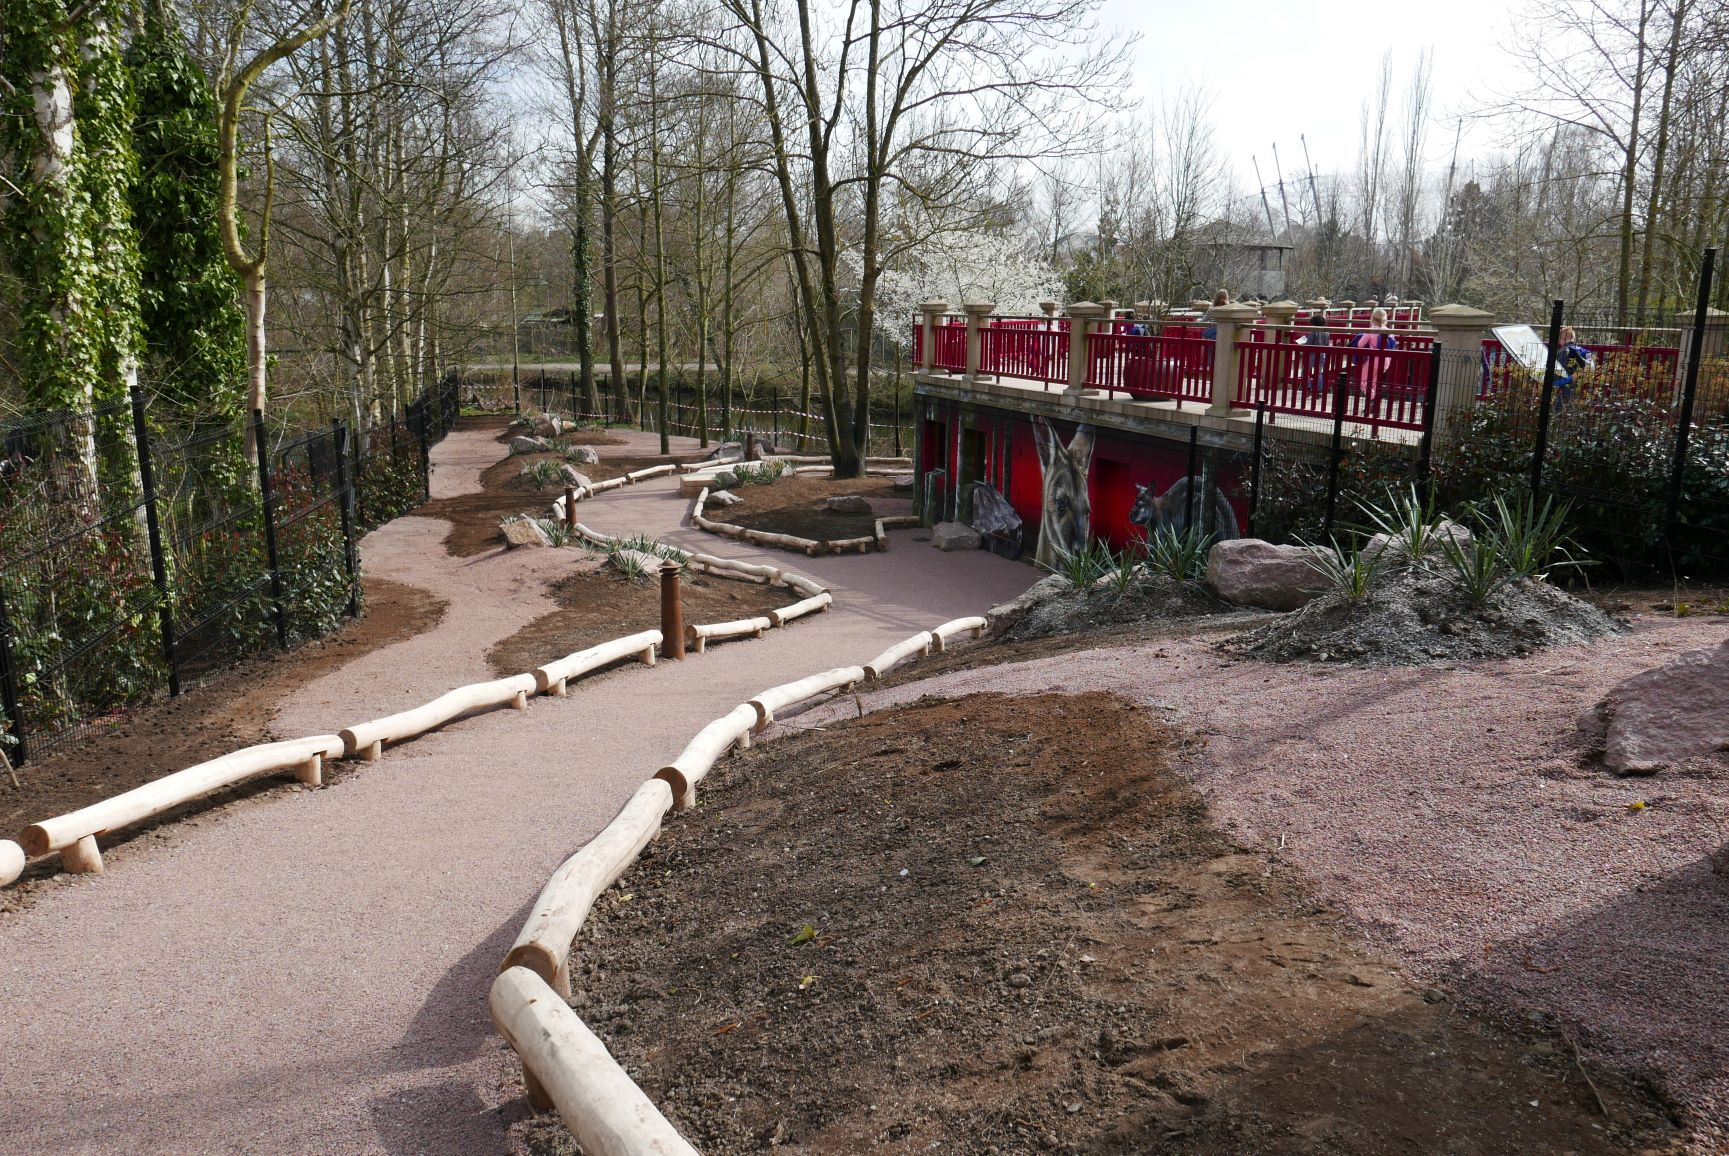 ODENSE ZOO – RED PERSPECTIVE